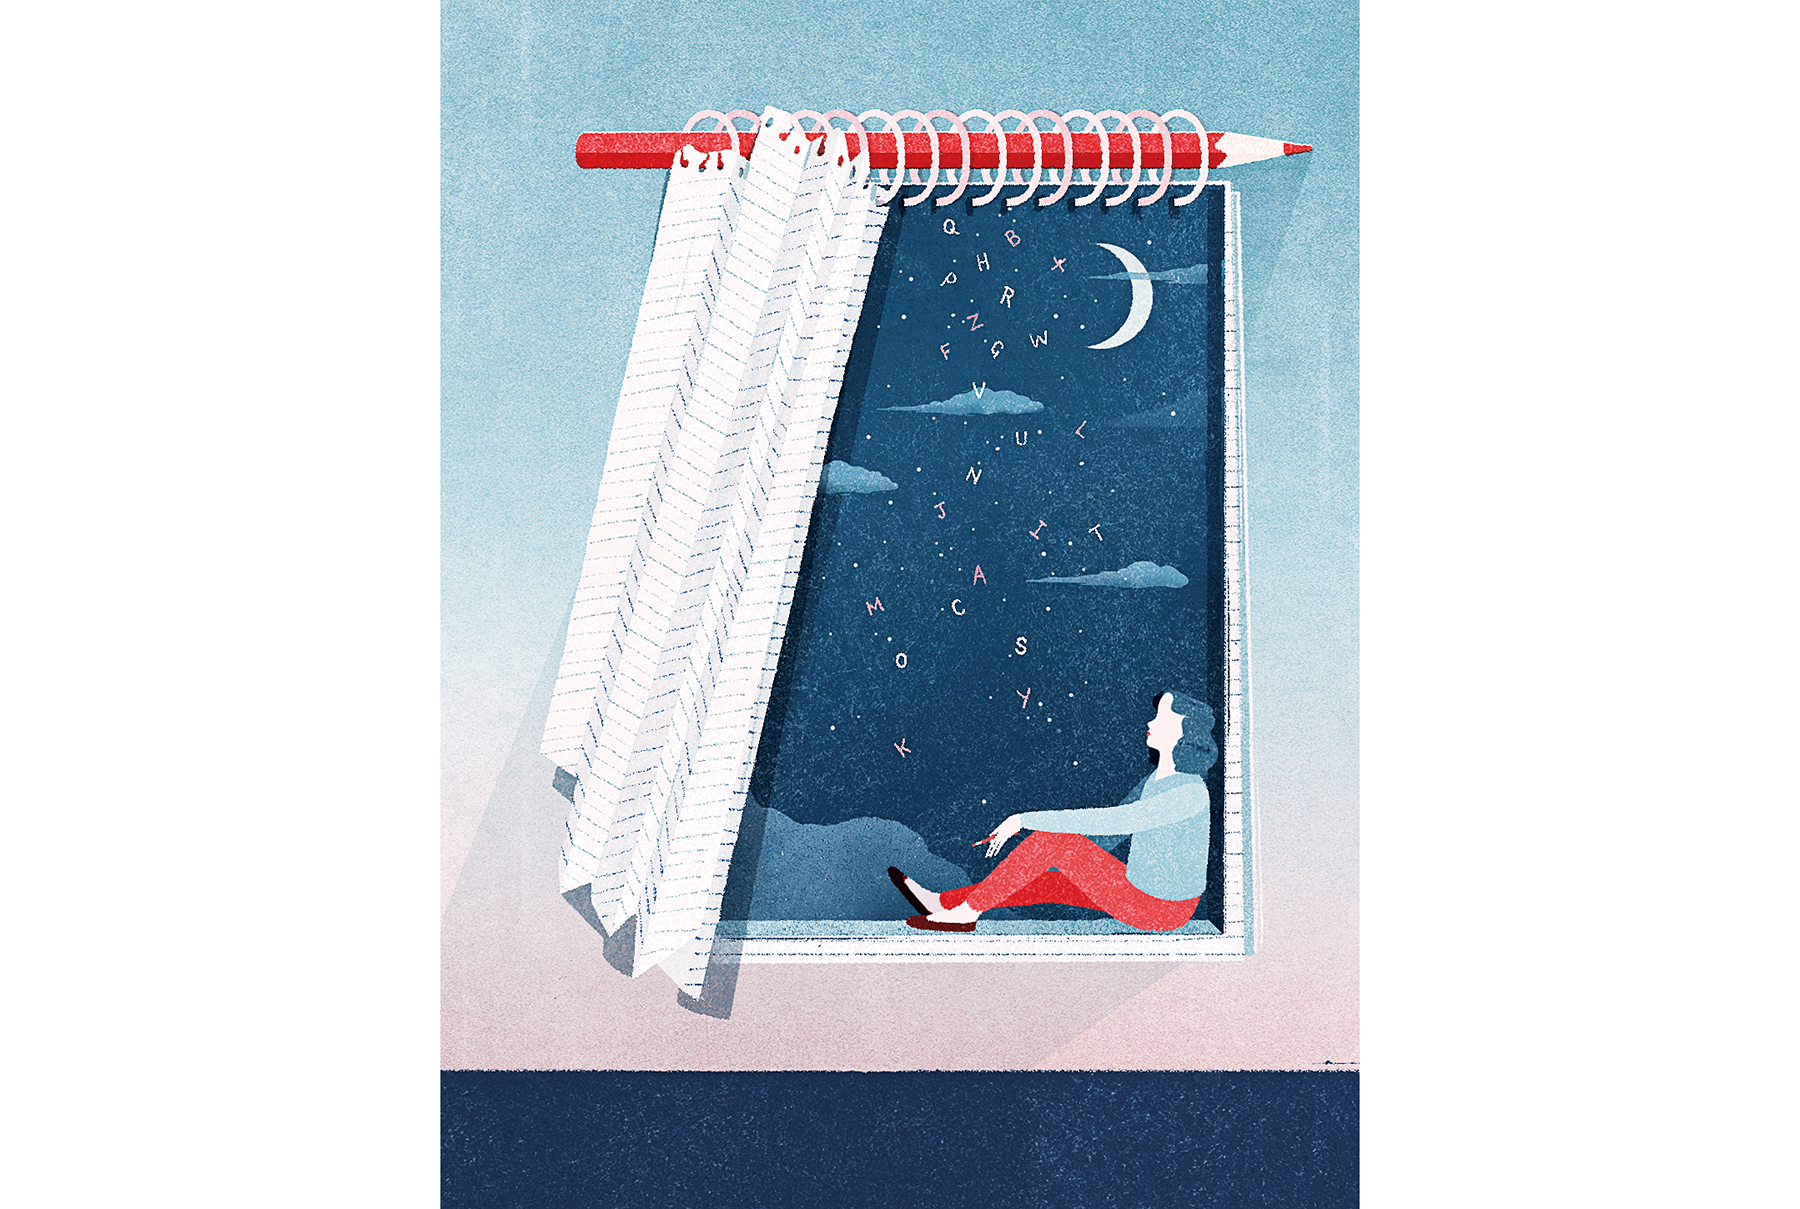 Illustration: woman in window with pencil, notebook page